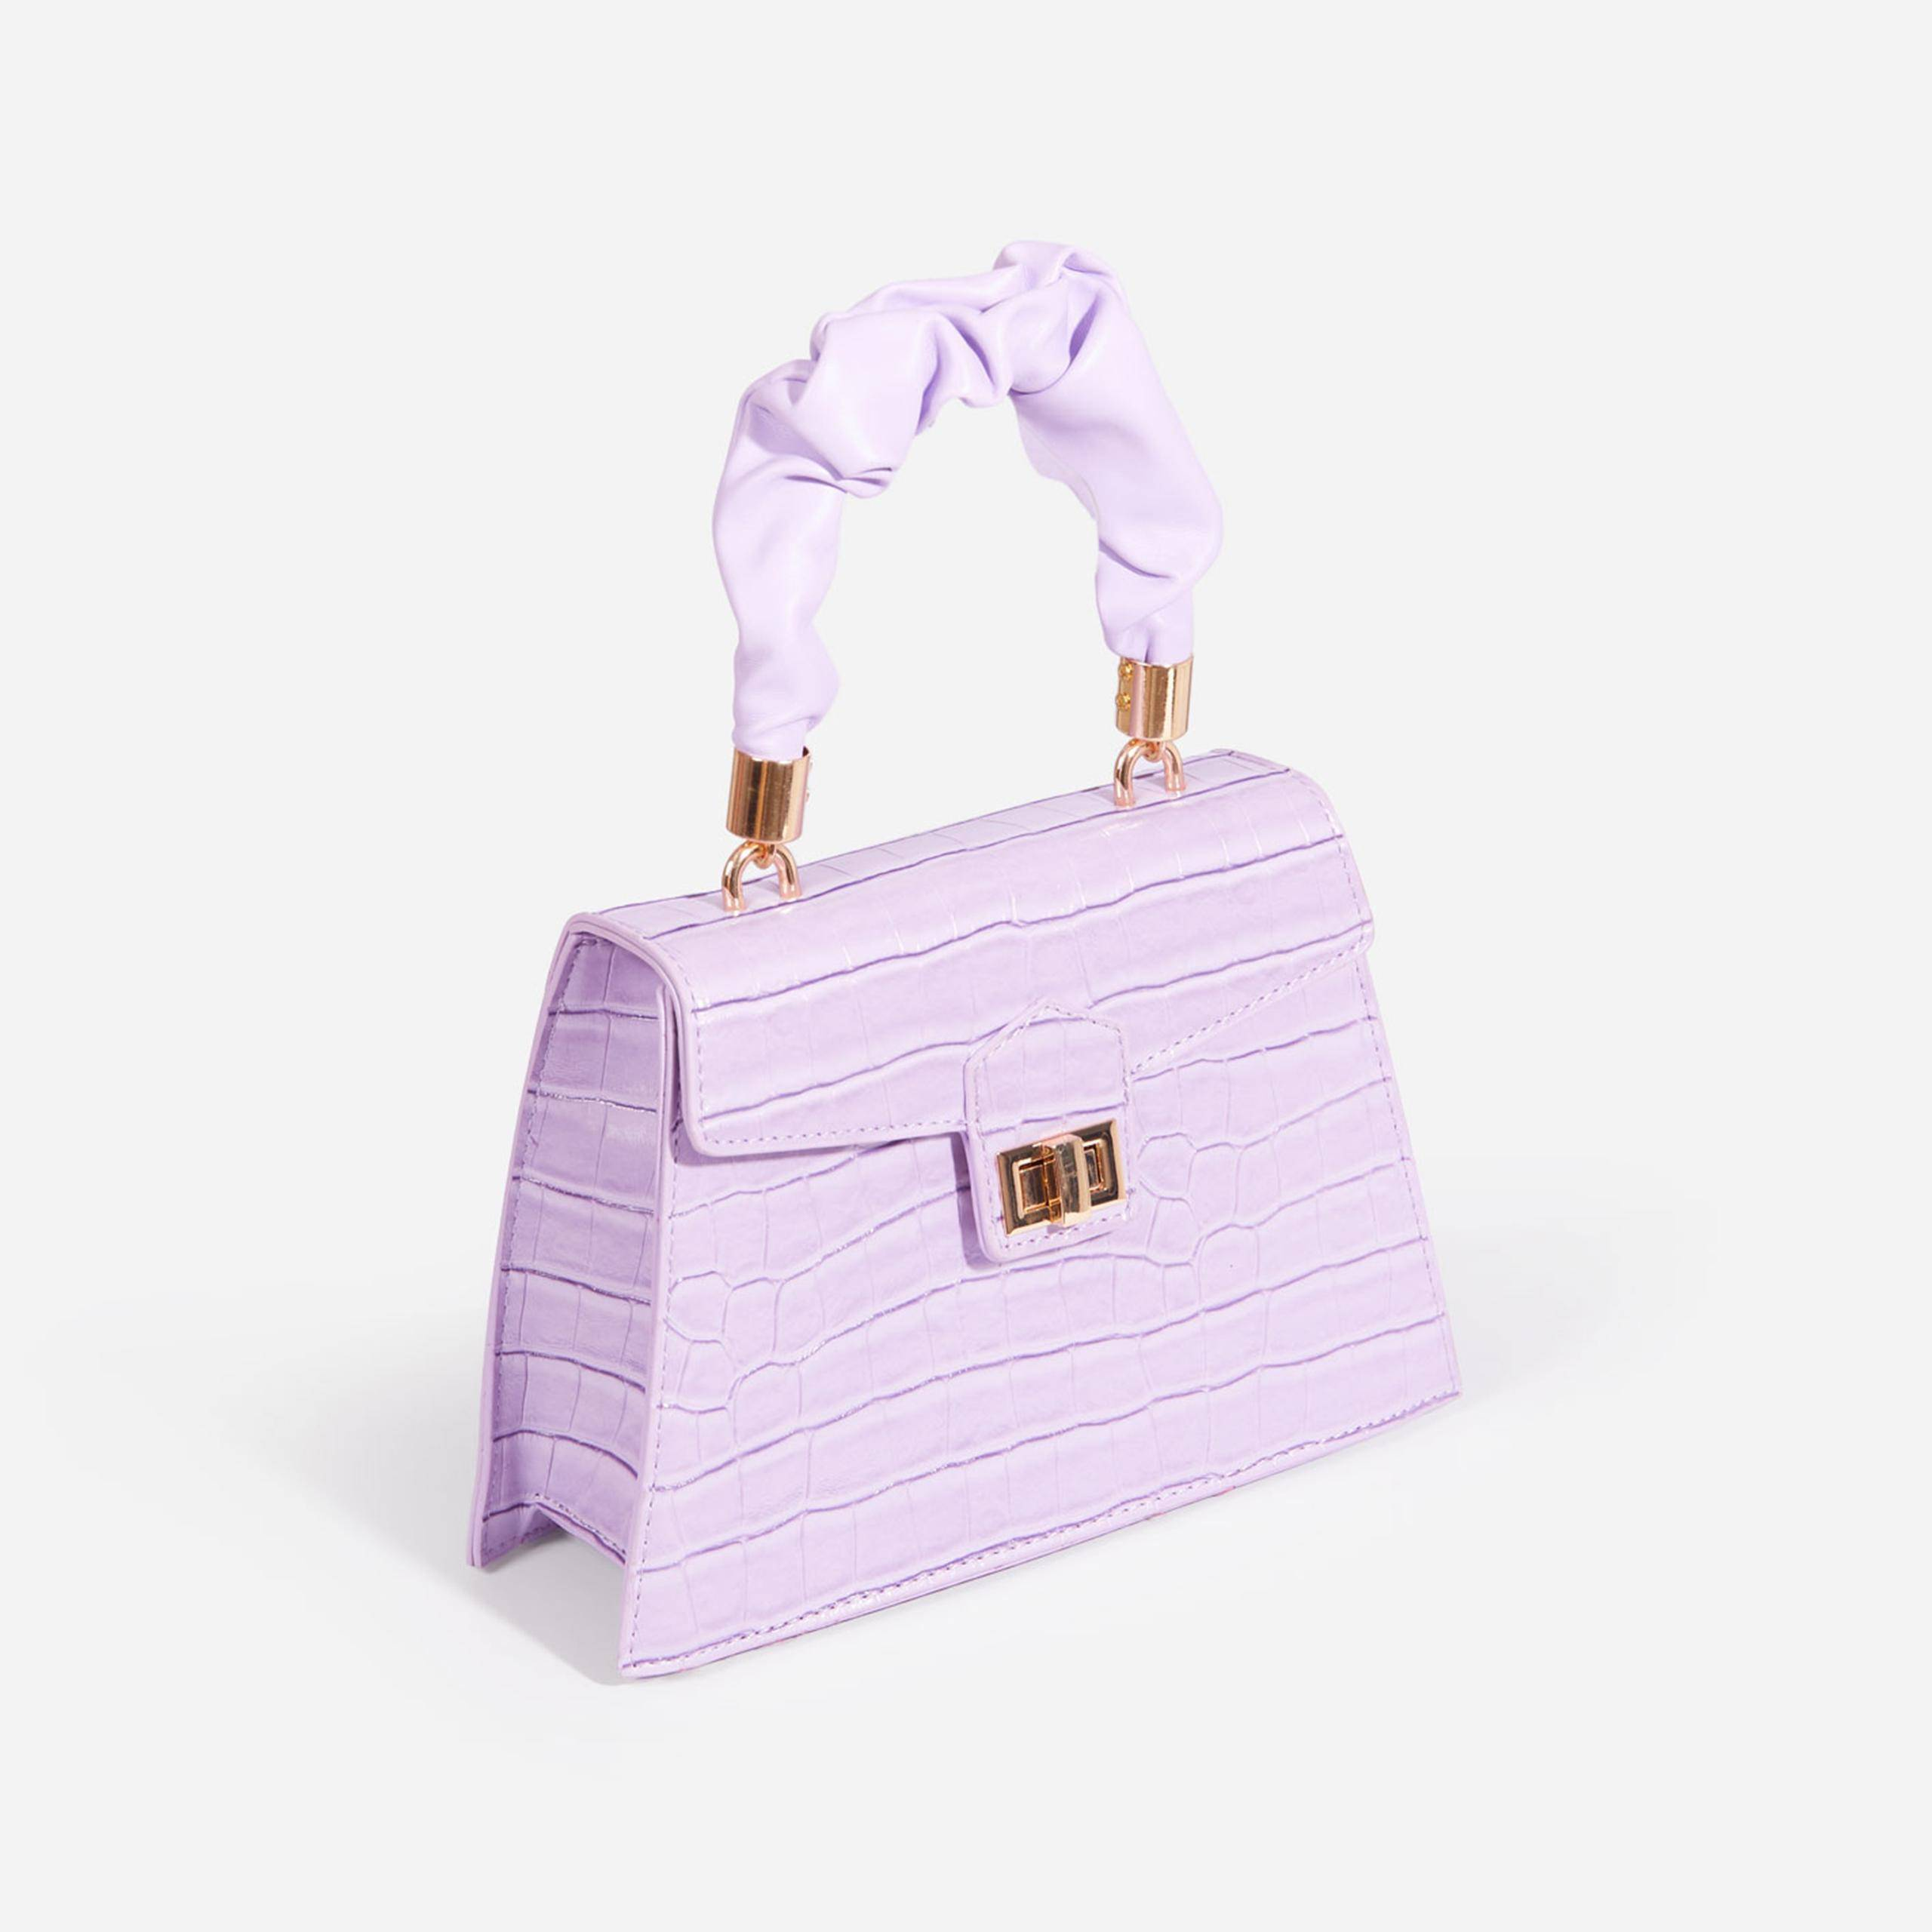 EGO Margo Ruched Handle Detail Box Bag In Lilac Croc Print Faux Leather,, Purple  - female - Size: One Size